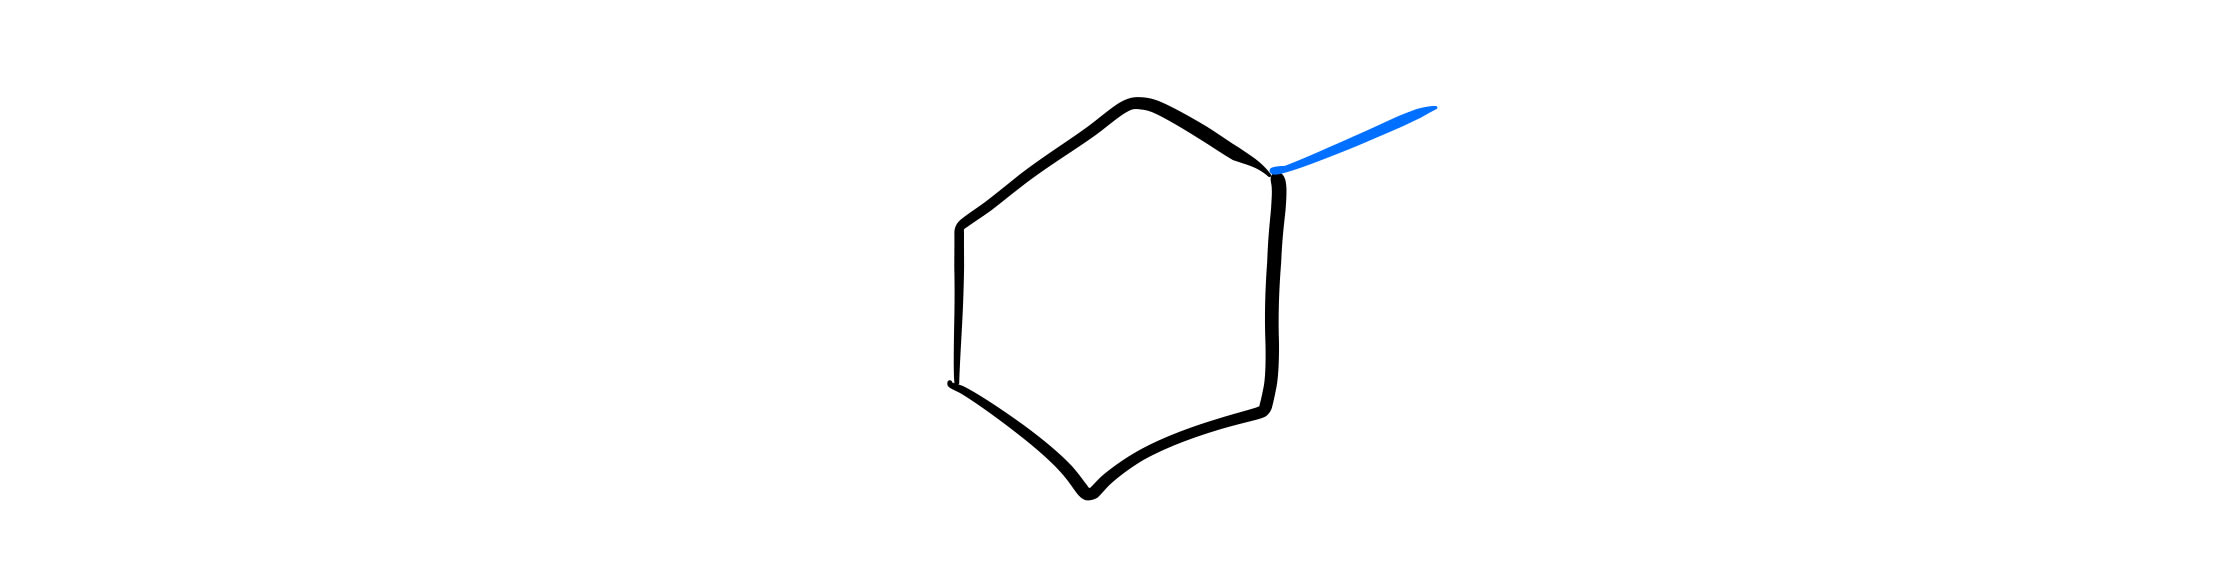 Methylcyclohexane